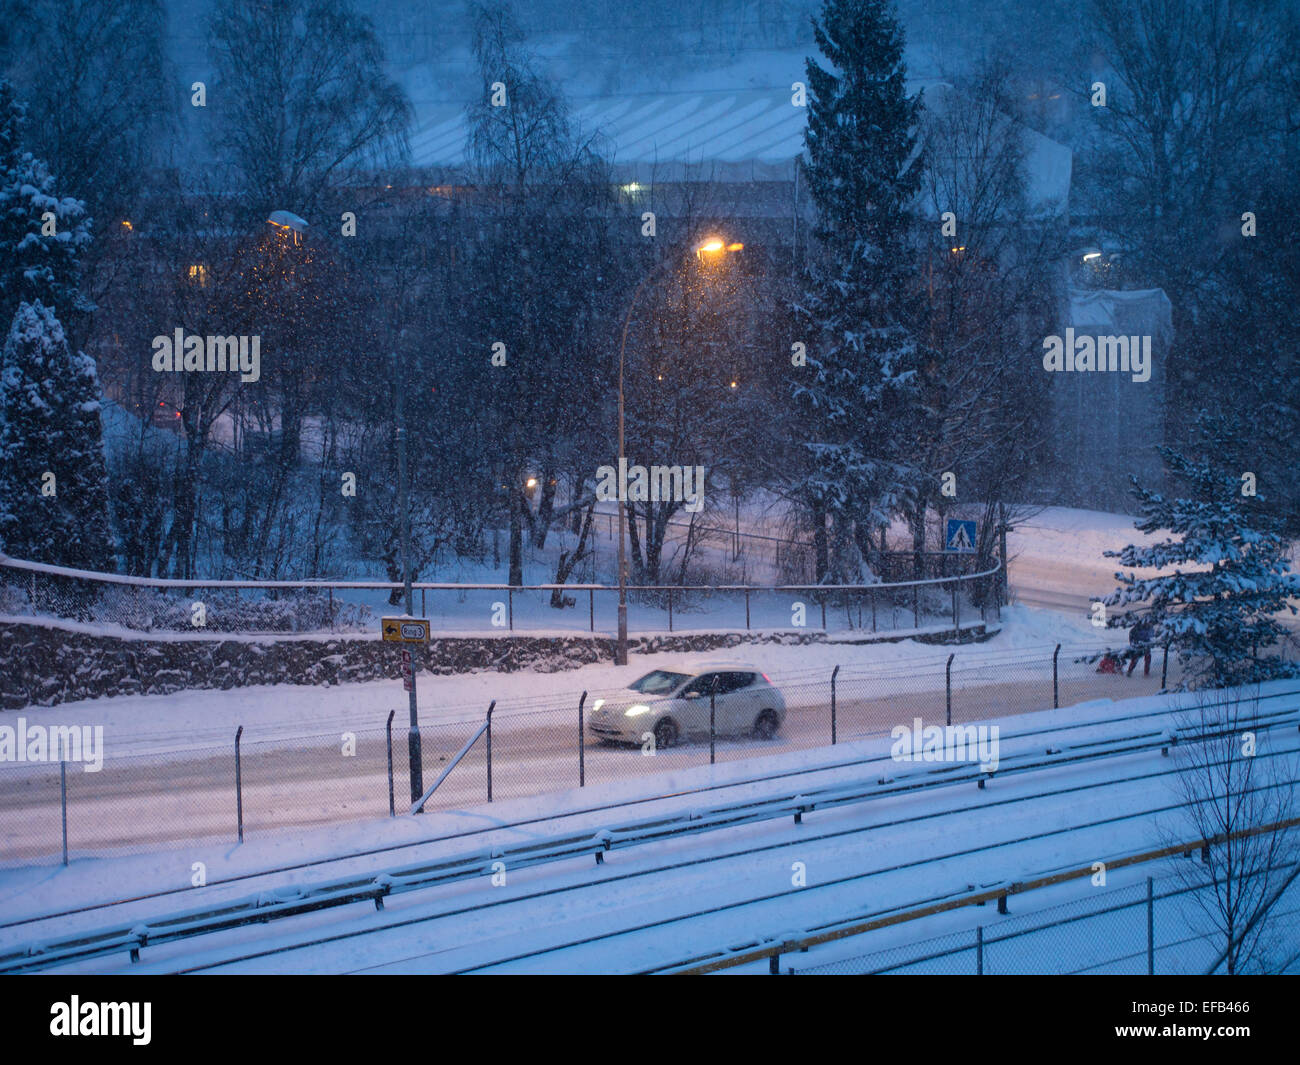 Blue hour, early winter morning in Brynseng Oslo Norway, snowing, road, traffic and streetlights - Stock Image